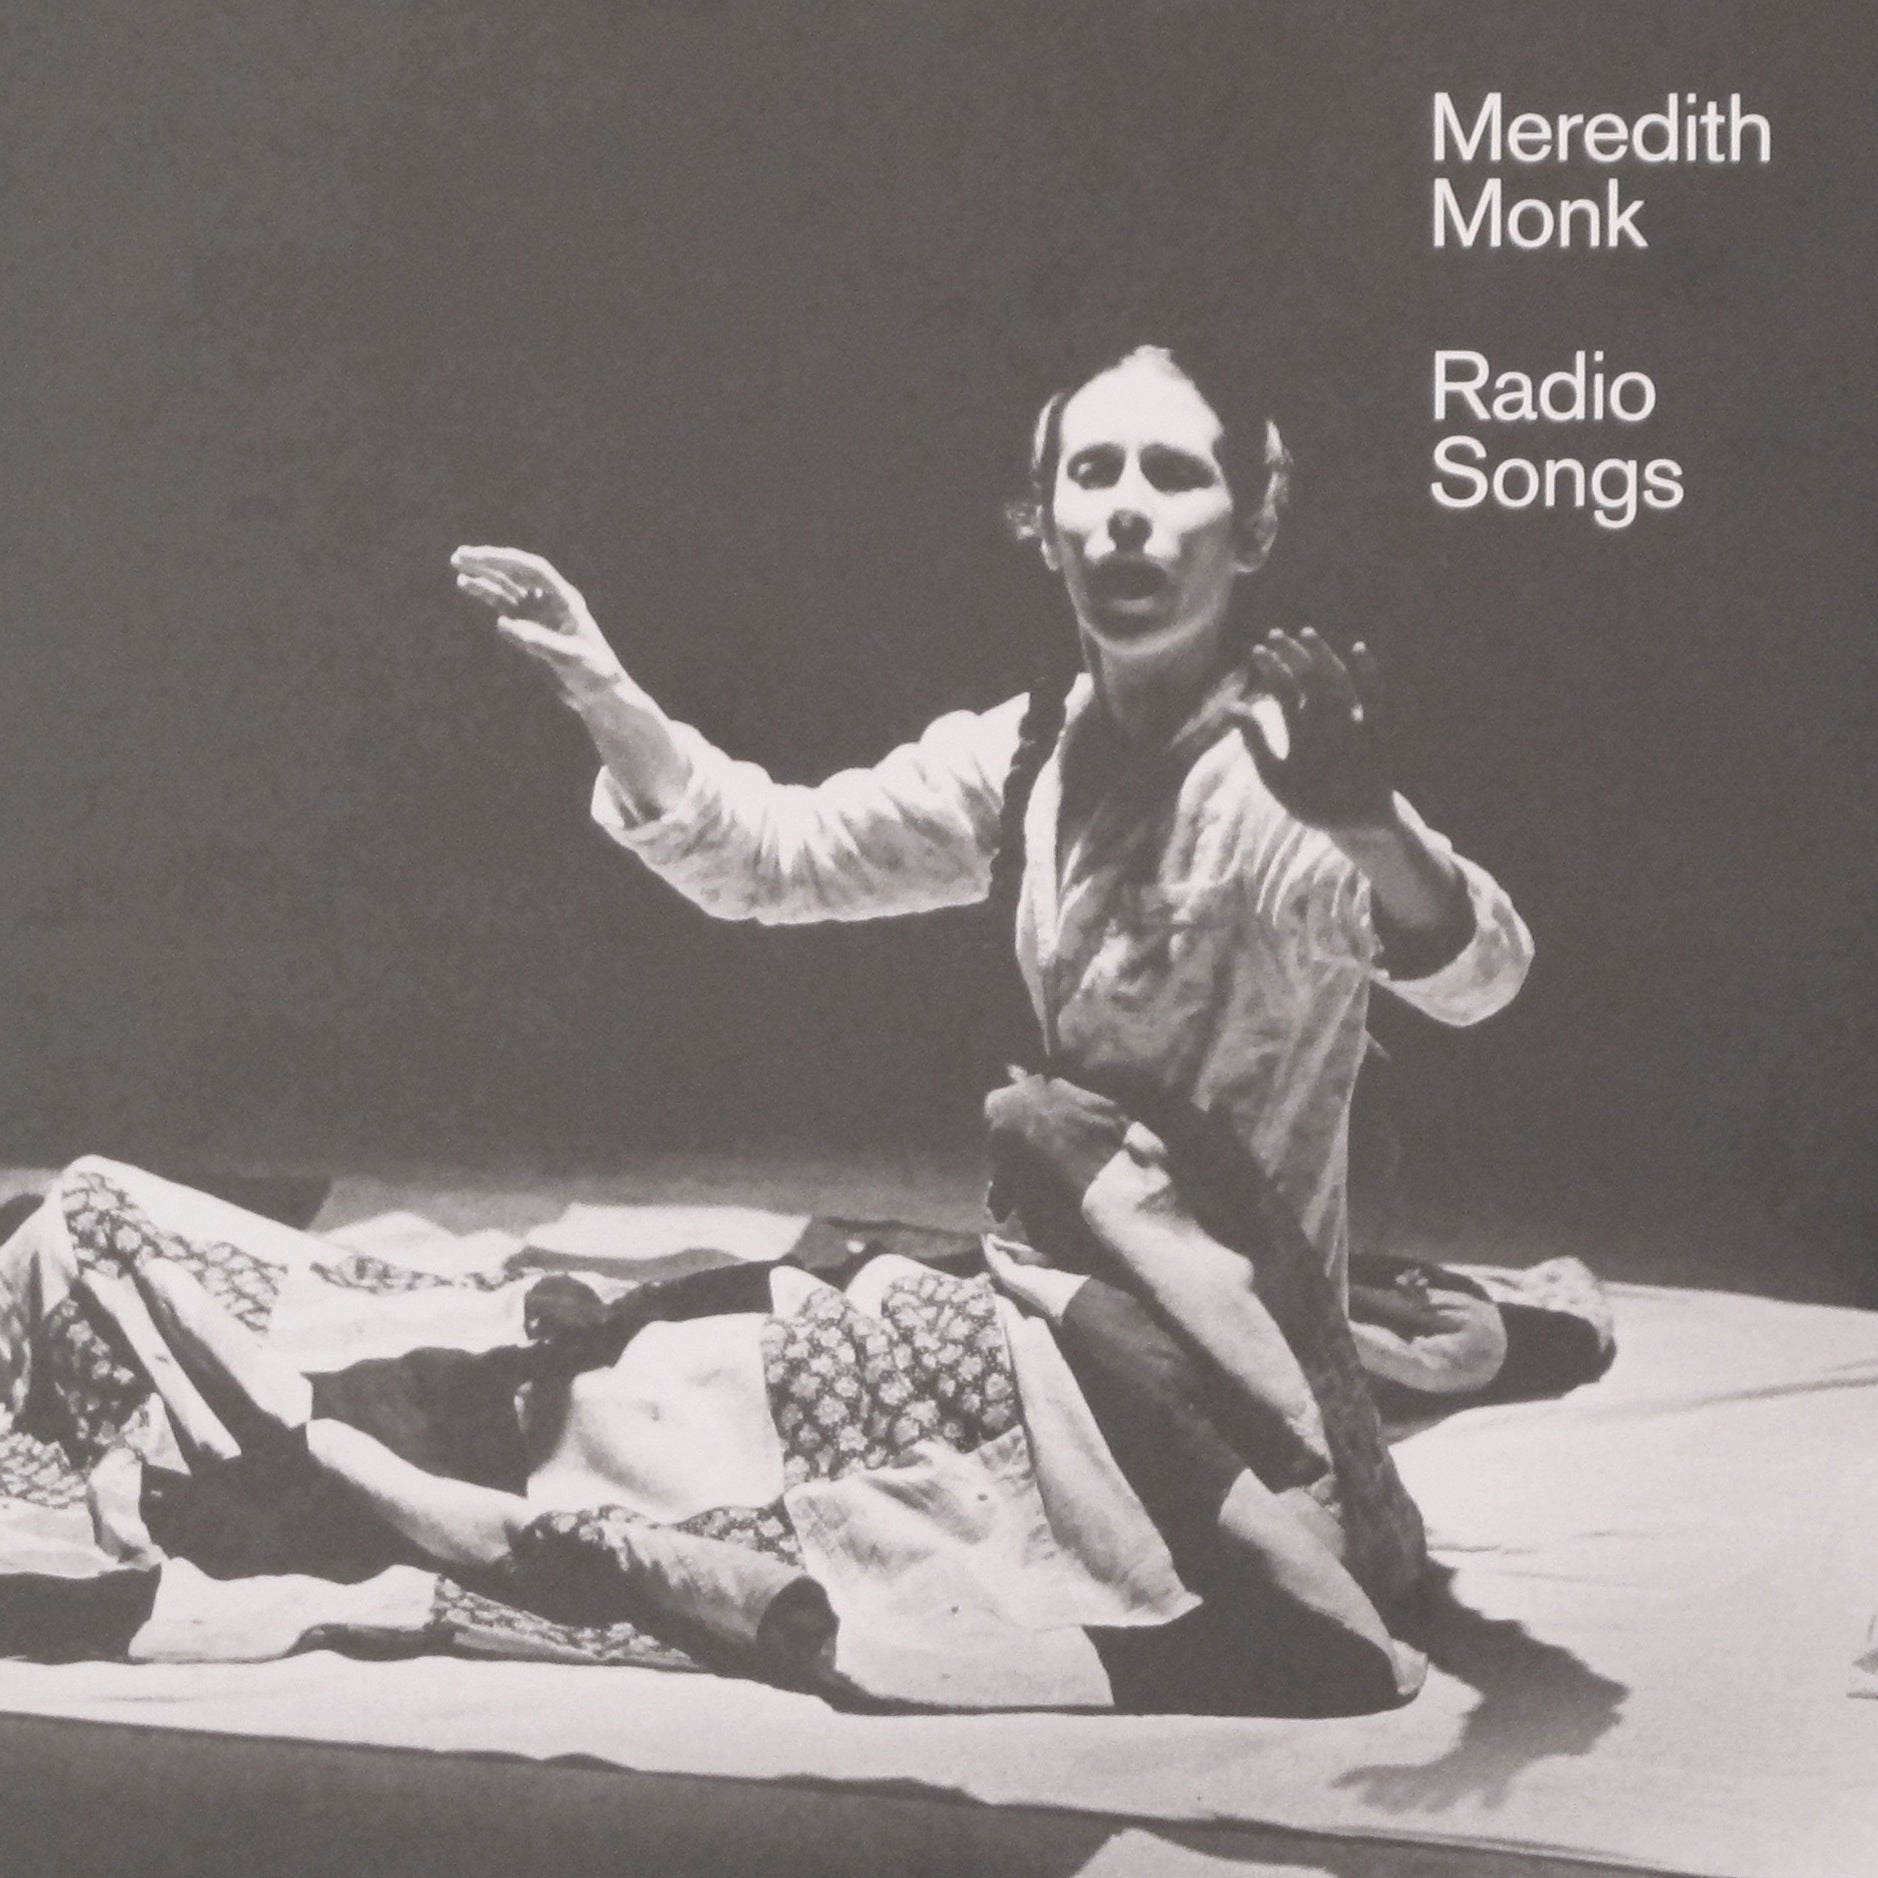 Radio Songs <span>Meredith Monk</span>